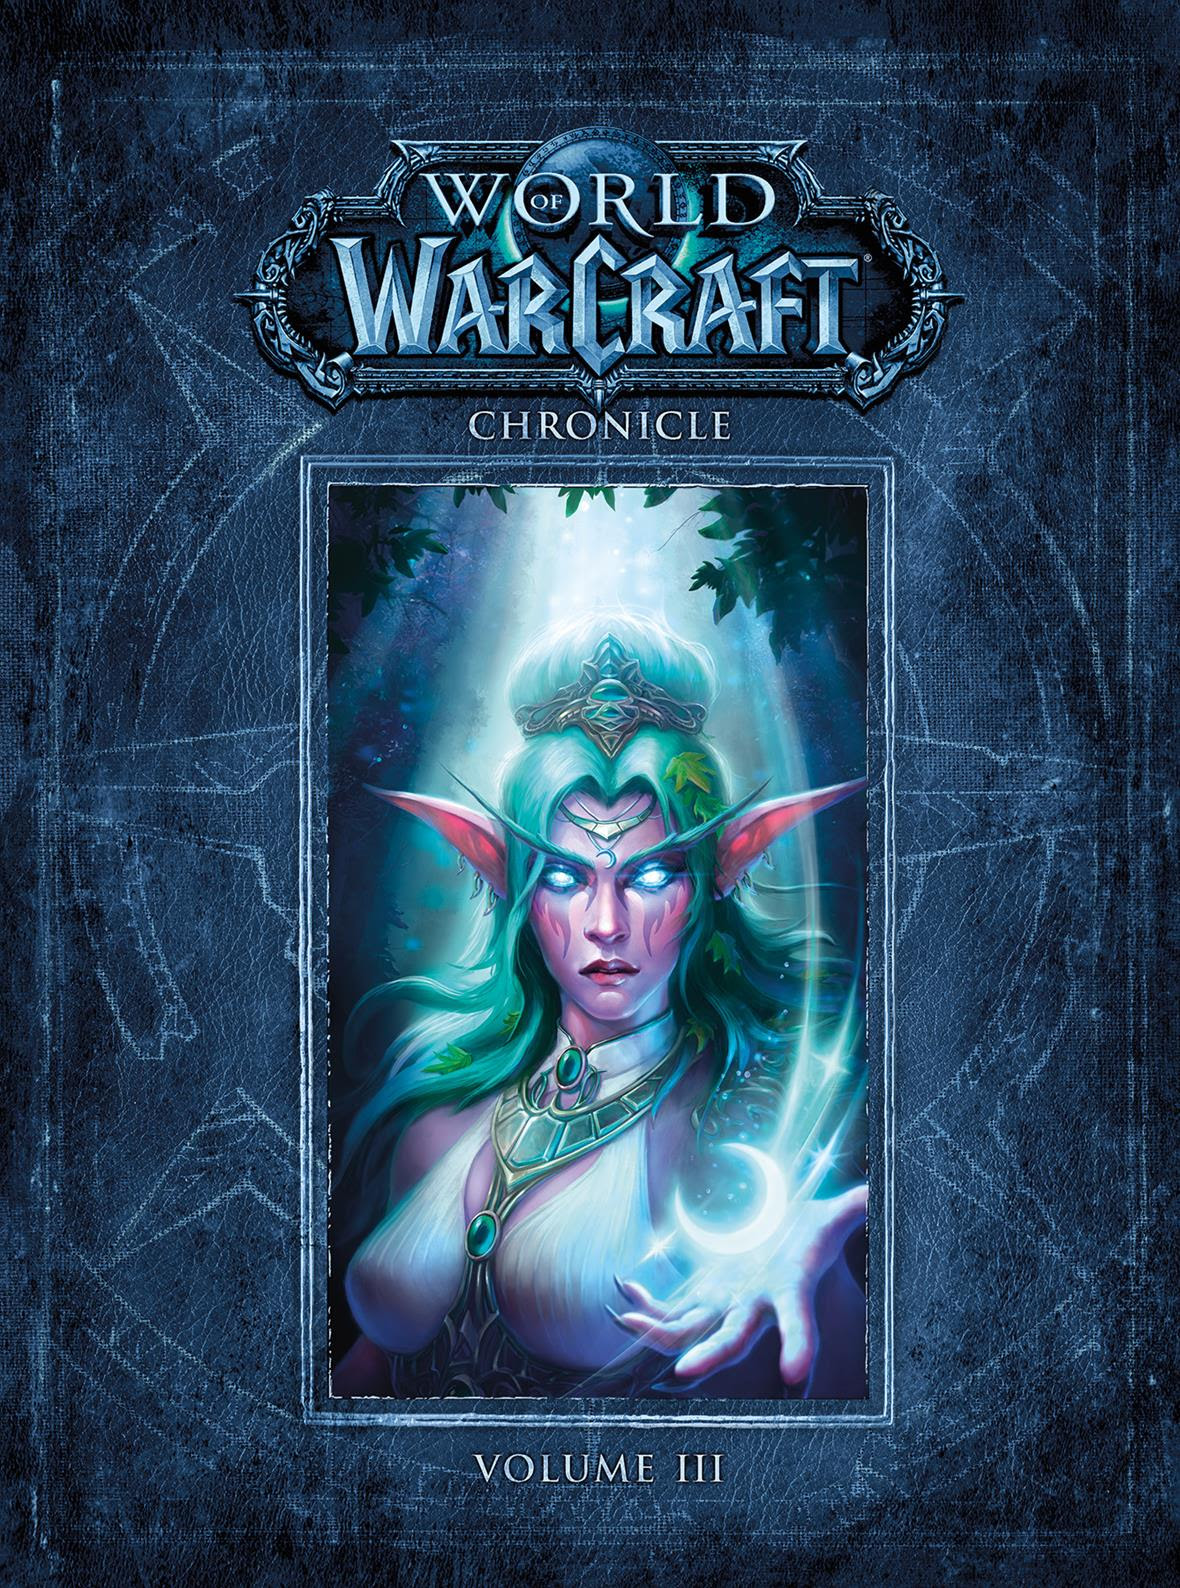 """SDCC 2017: """"World of Warcraft Chronicle"""" Third Installment Released by Dark Horse and Blizzard Entertainment"""